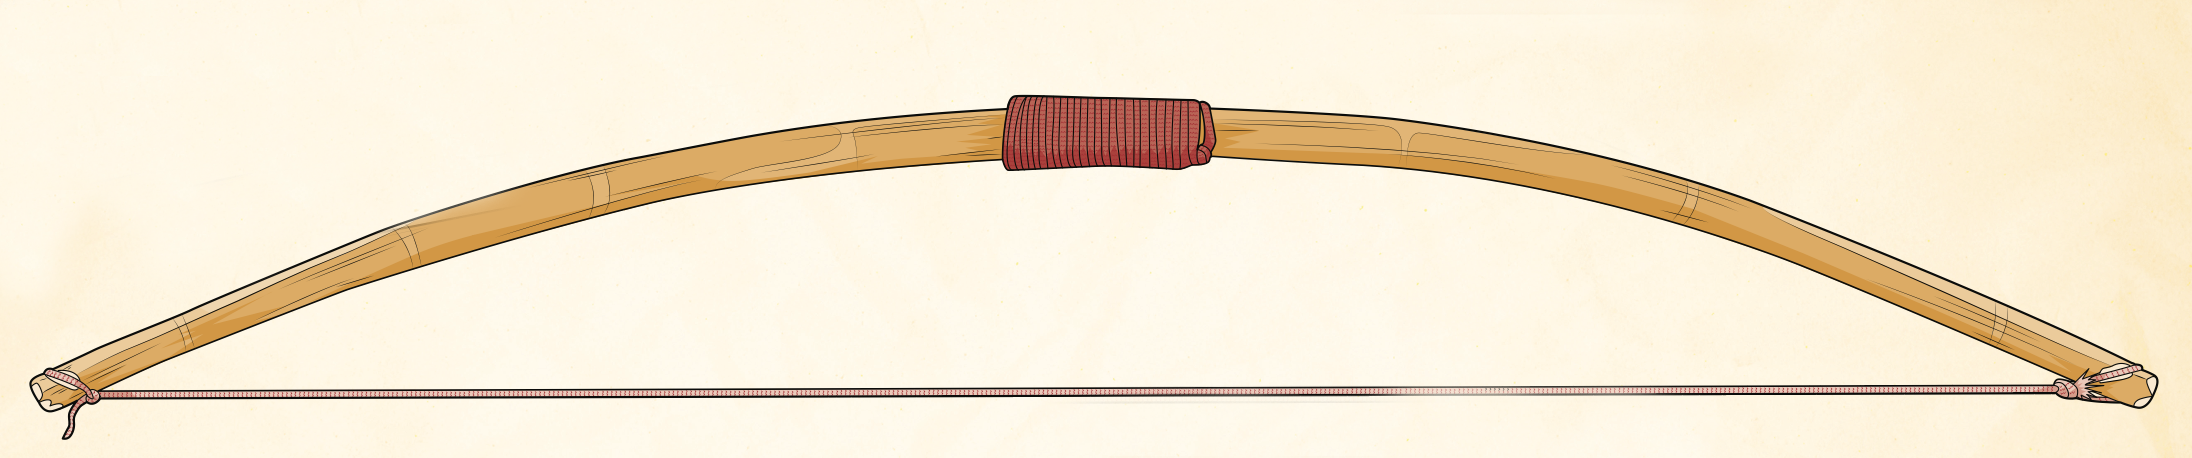 Survival Skills: How to Carve a Traditional Bow